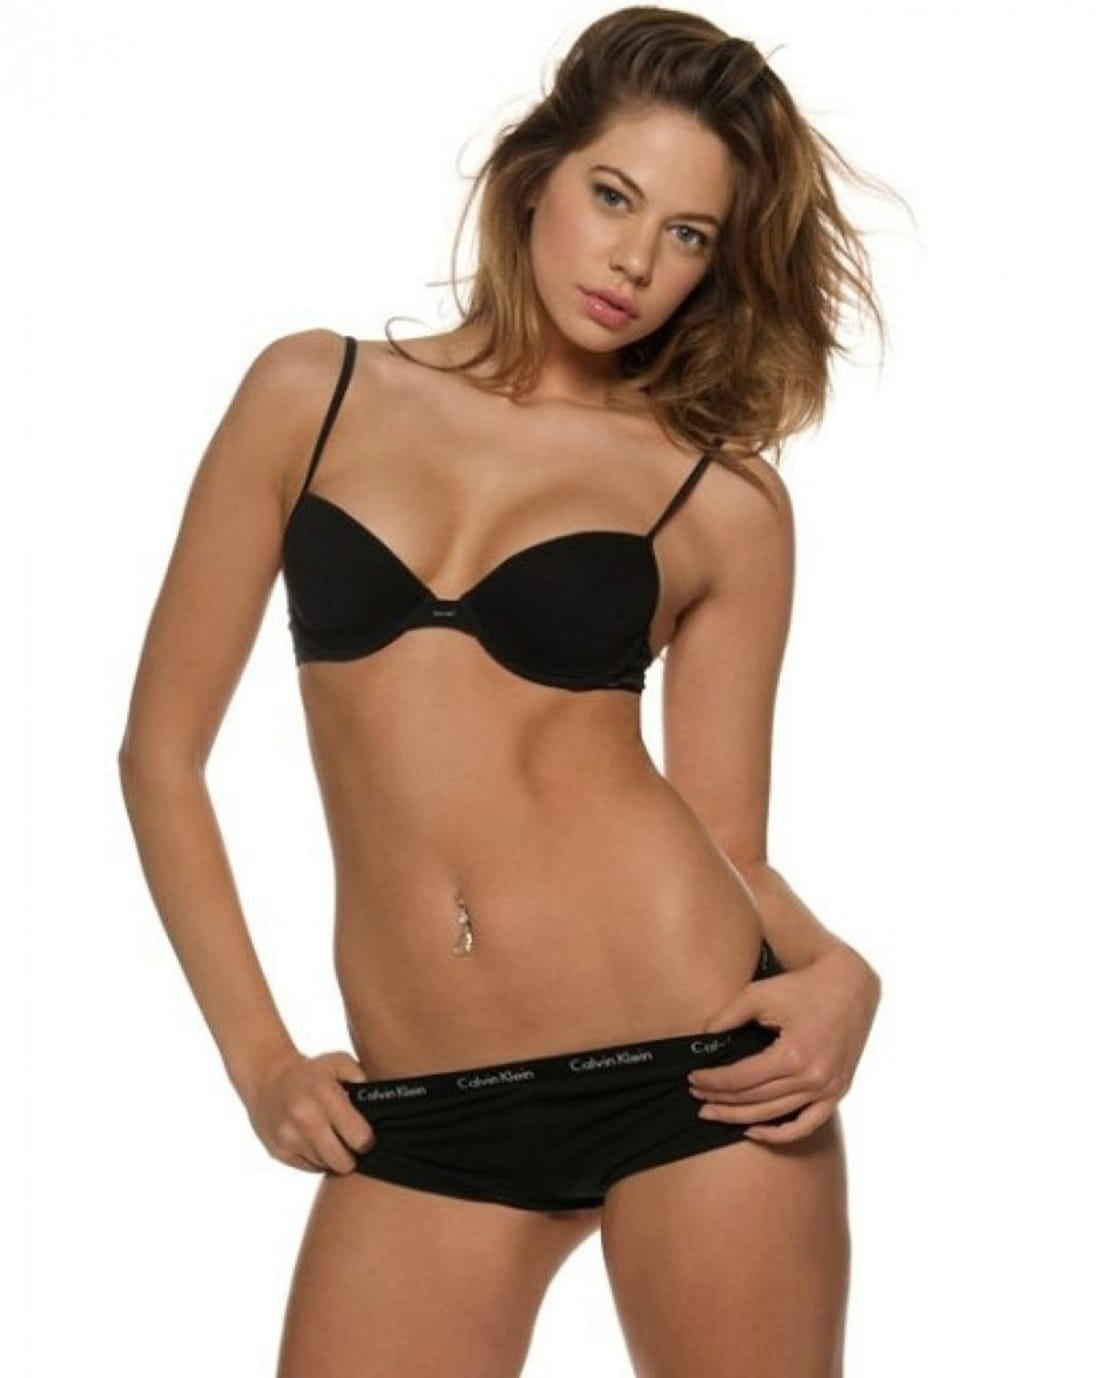 Analeigh Tipton Sex picture of analeigh tipton